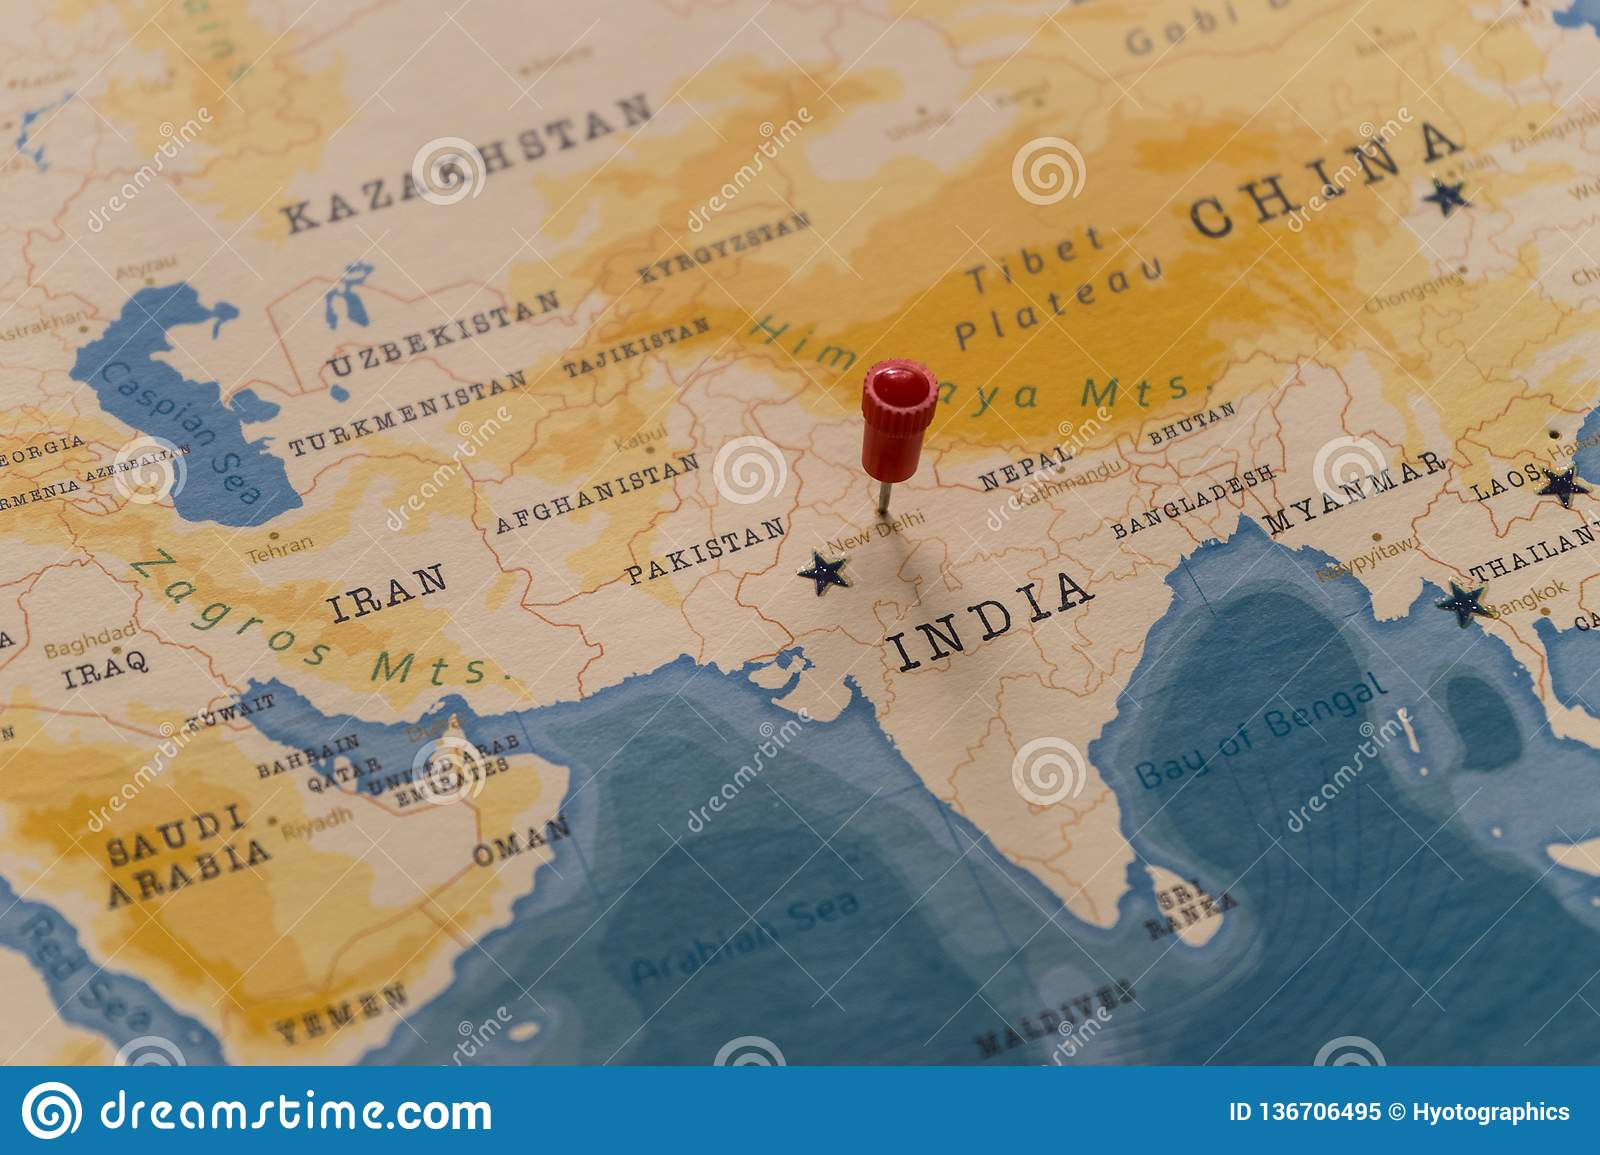 A Pin On New Delhi, India In The World Map Stock Image ... Image Of India World Map on national anthem of india, people of india, economy of india, road maps of india, atlas of india, shapes of india, princess of india, current president of india, continents of india, geographical features of india, elephants of india, water of india, blue of india, emblem of india, currency of india, bangladesh of india,